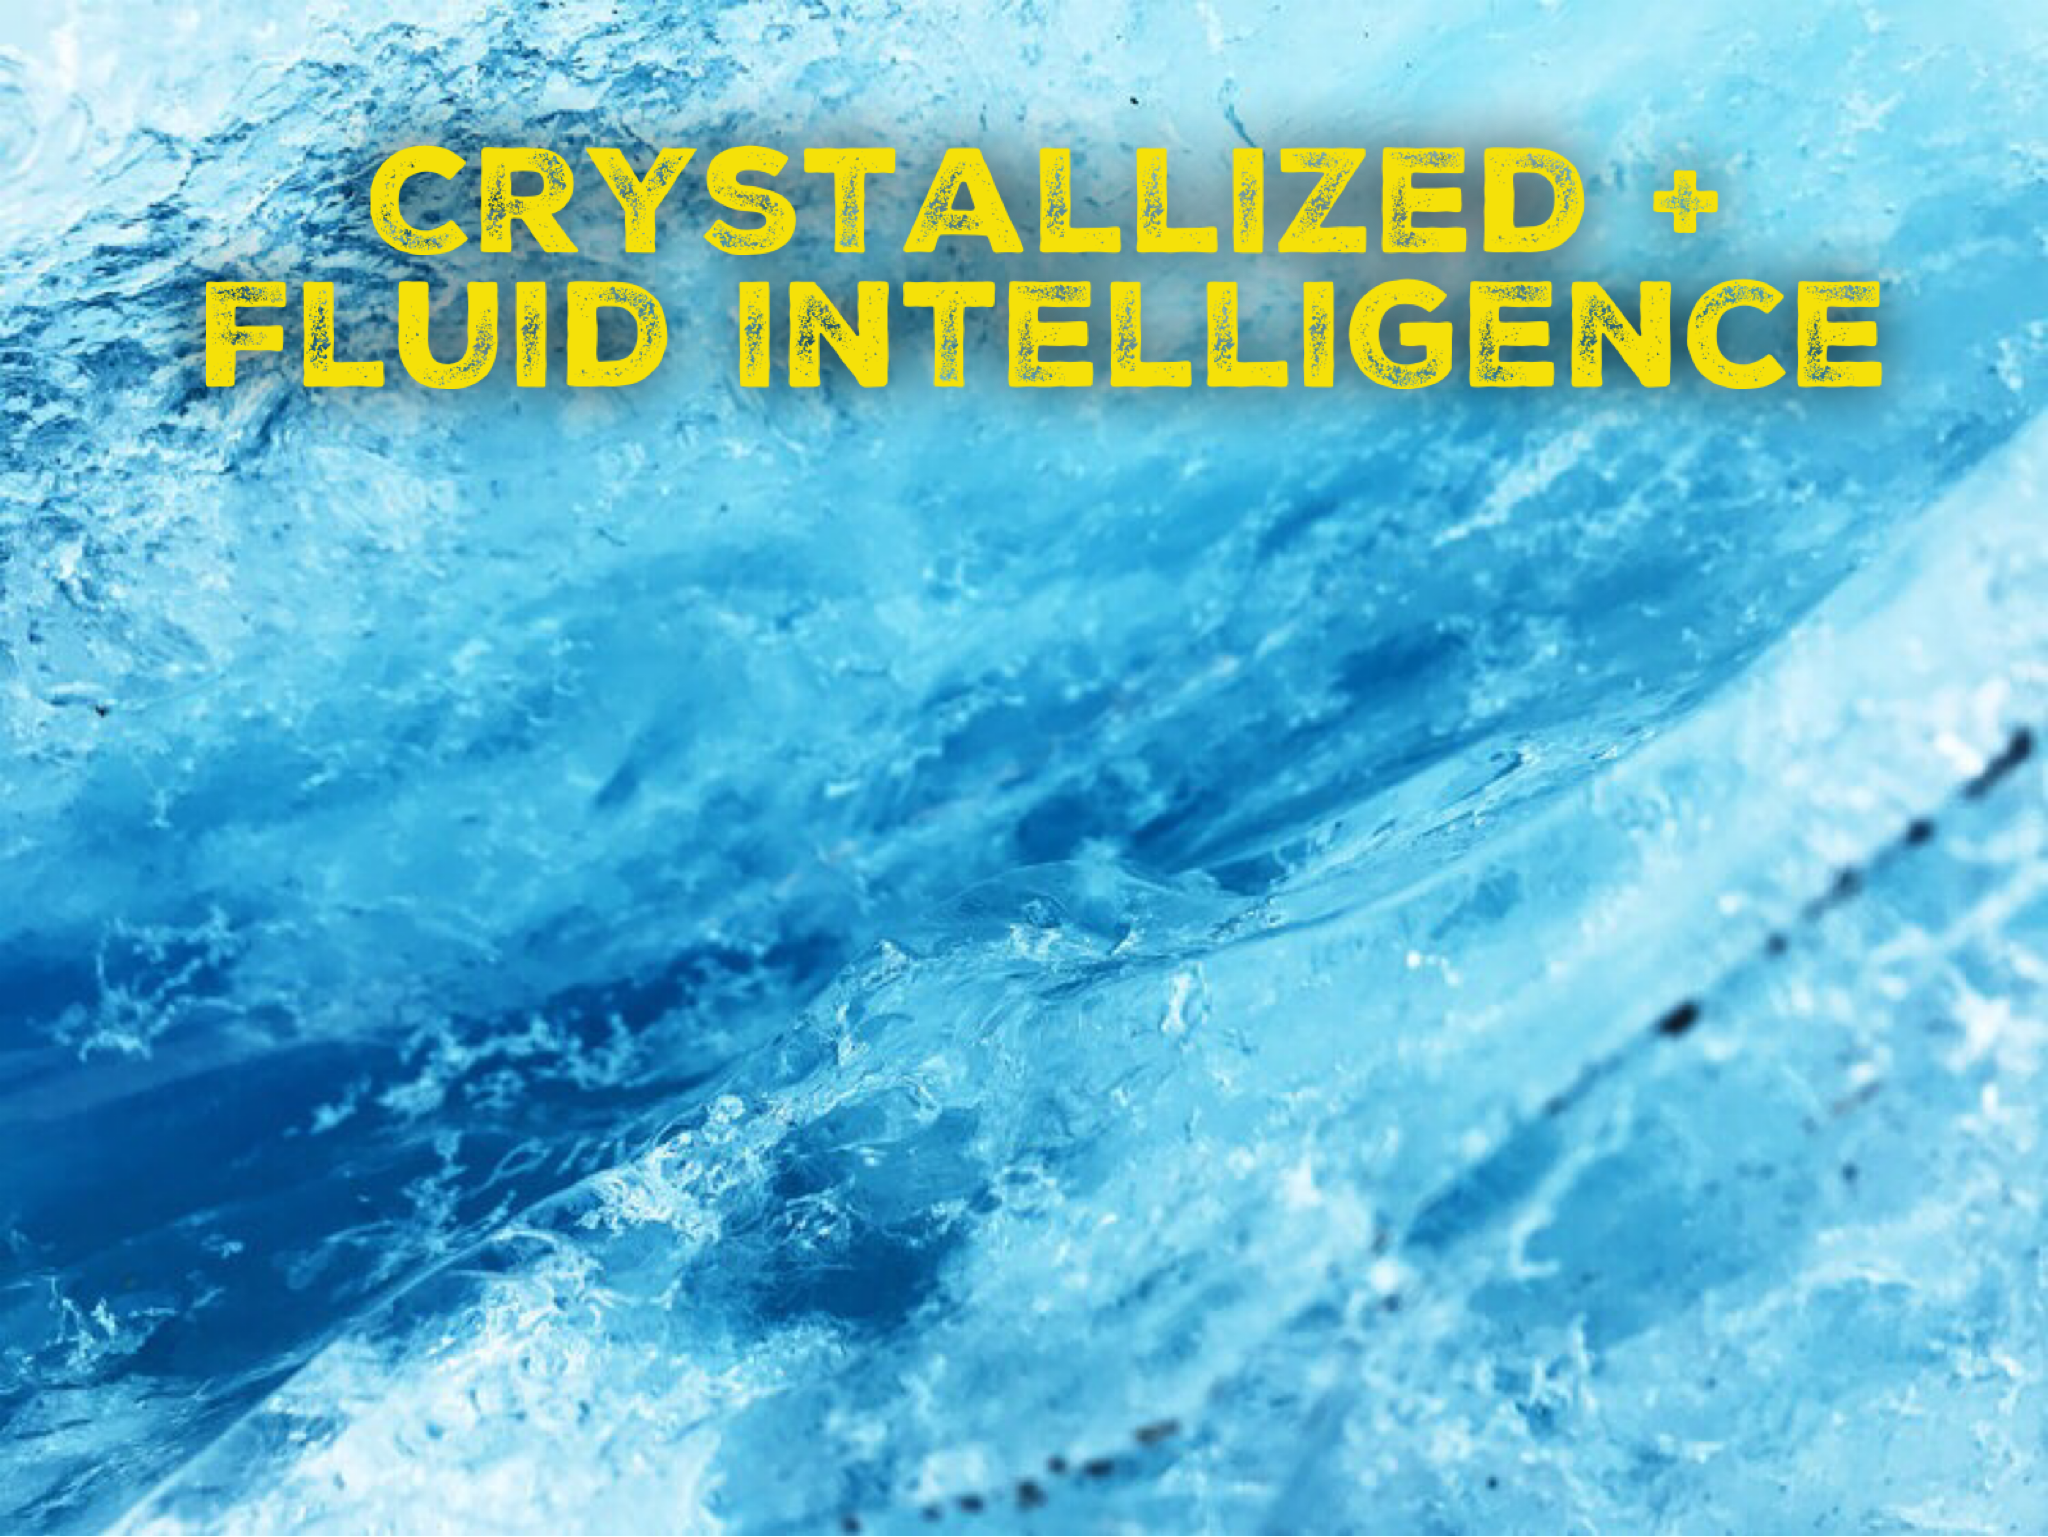 Crystallized + Fluid Intelligence